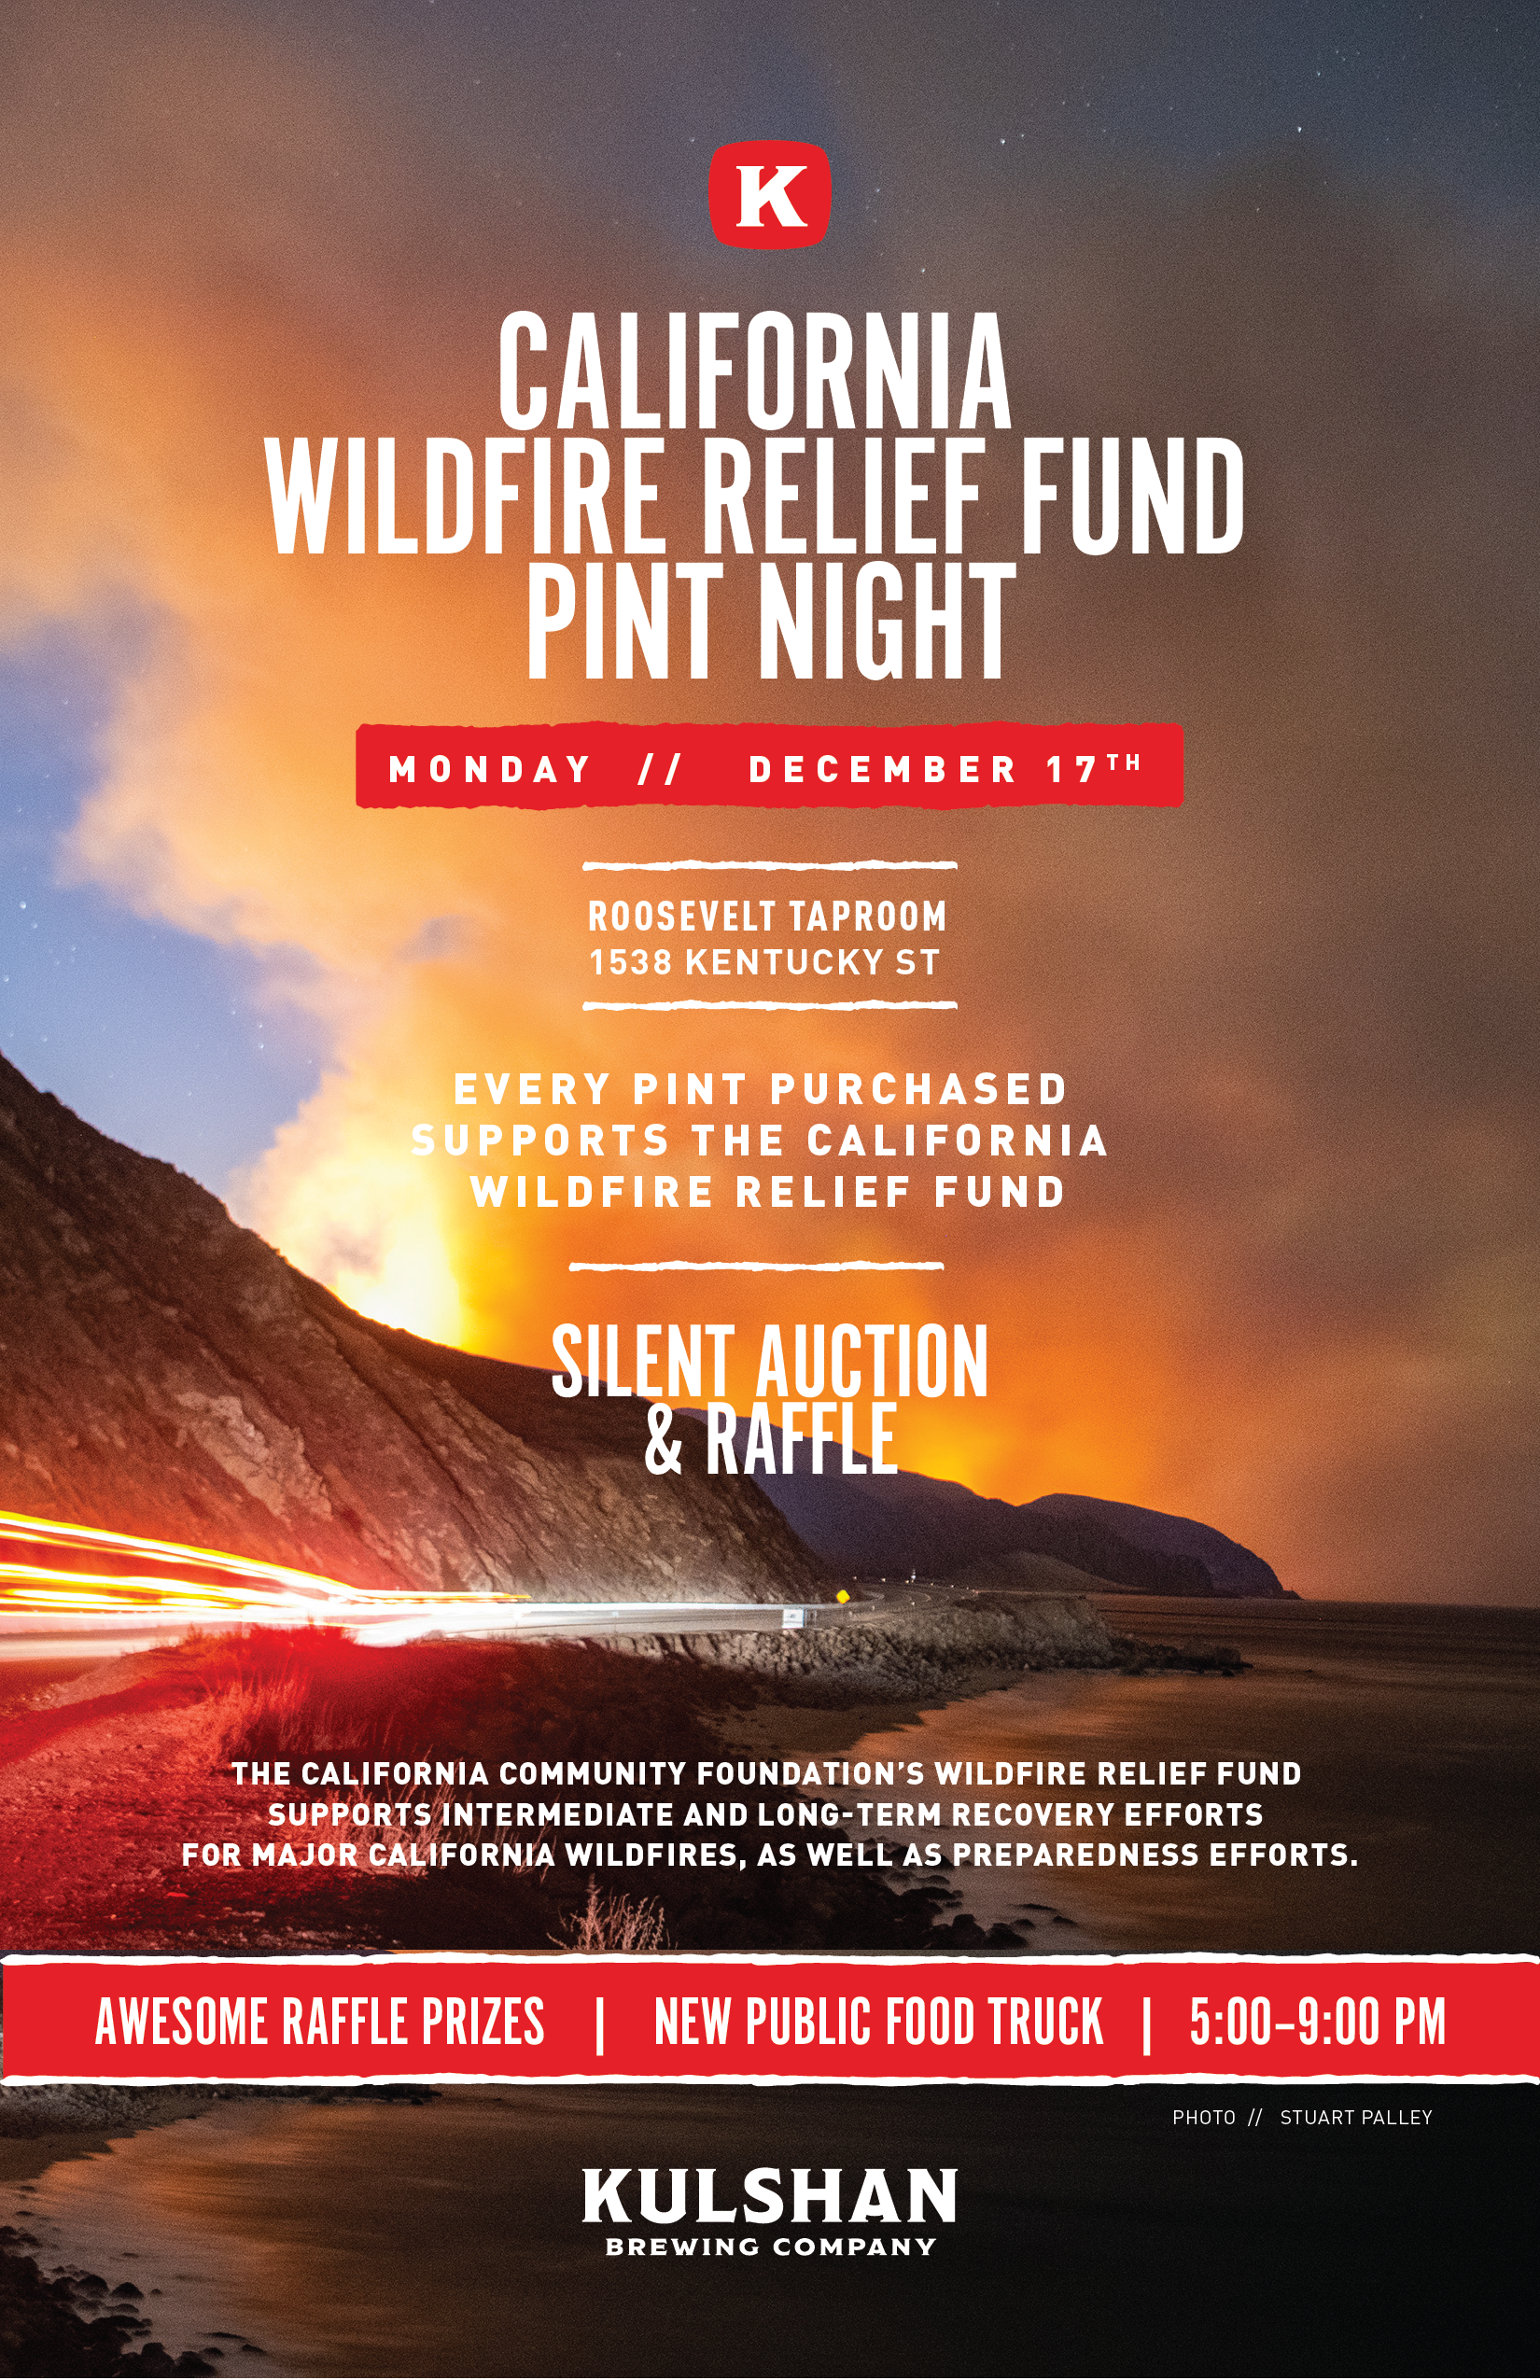 CaliforniaWildfire-01-01 (1).png